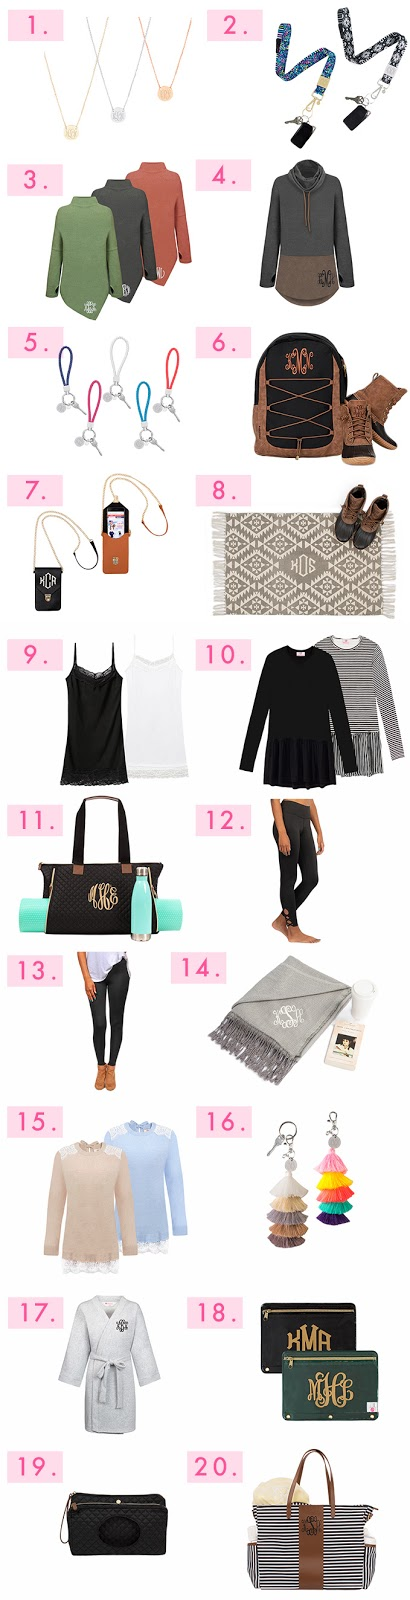 monogram accessories and clothing